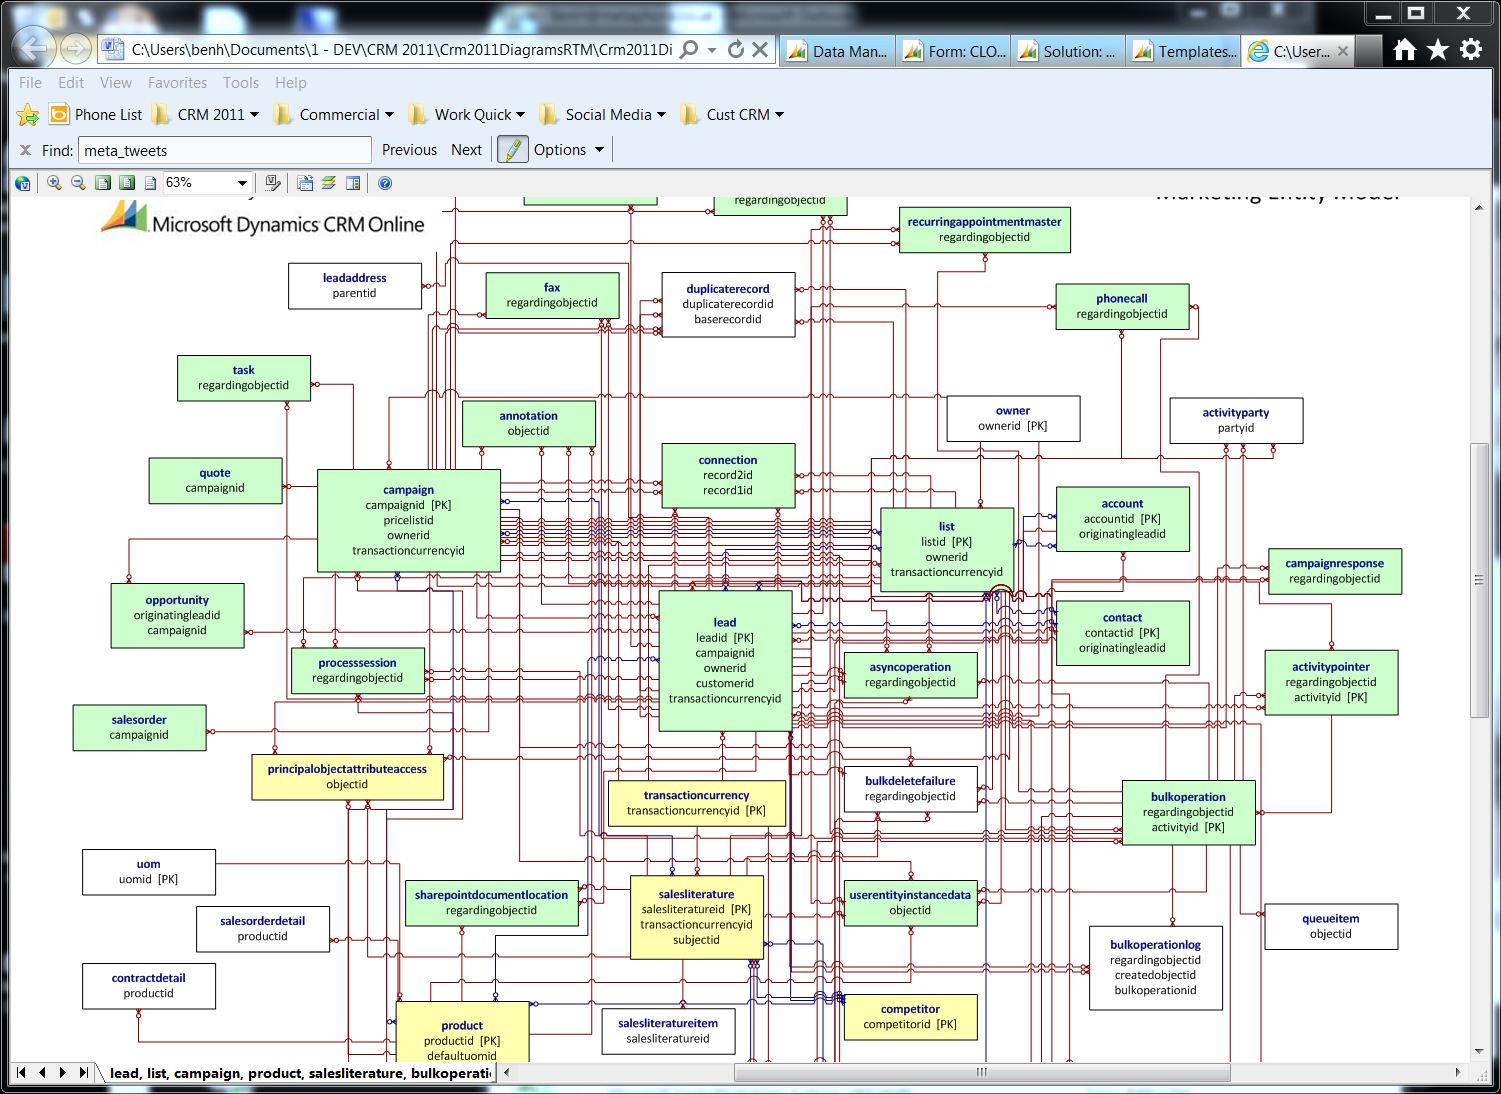 microsoft dynamics crm 2011 entity relationship diagrams metaphorix Entity Relationship Diagram Design